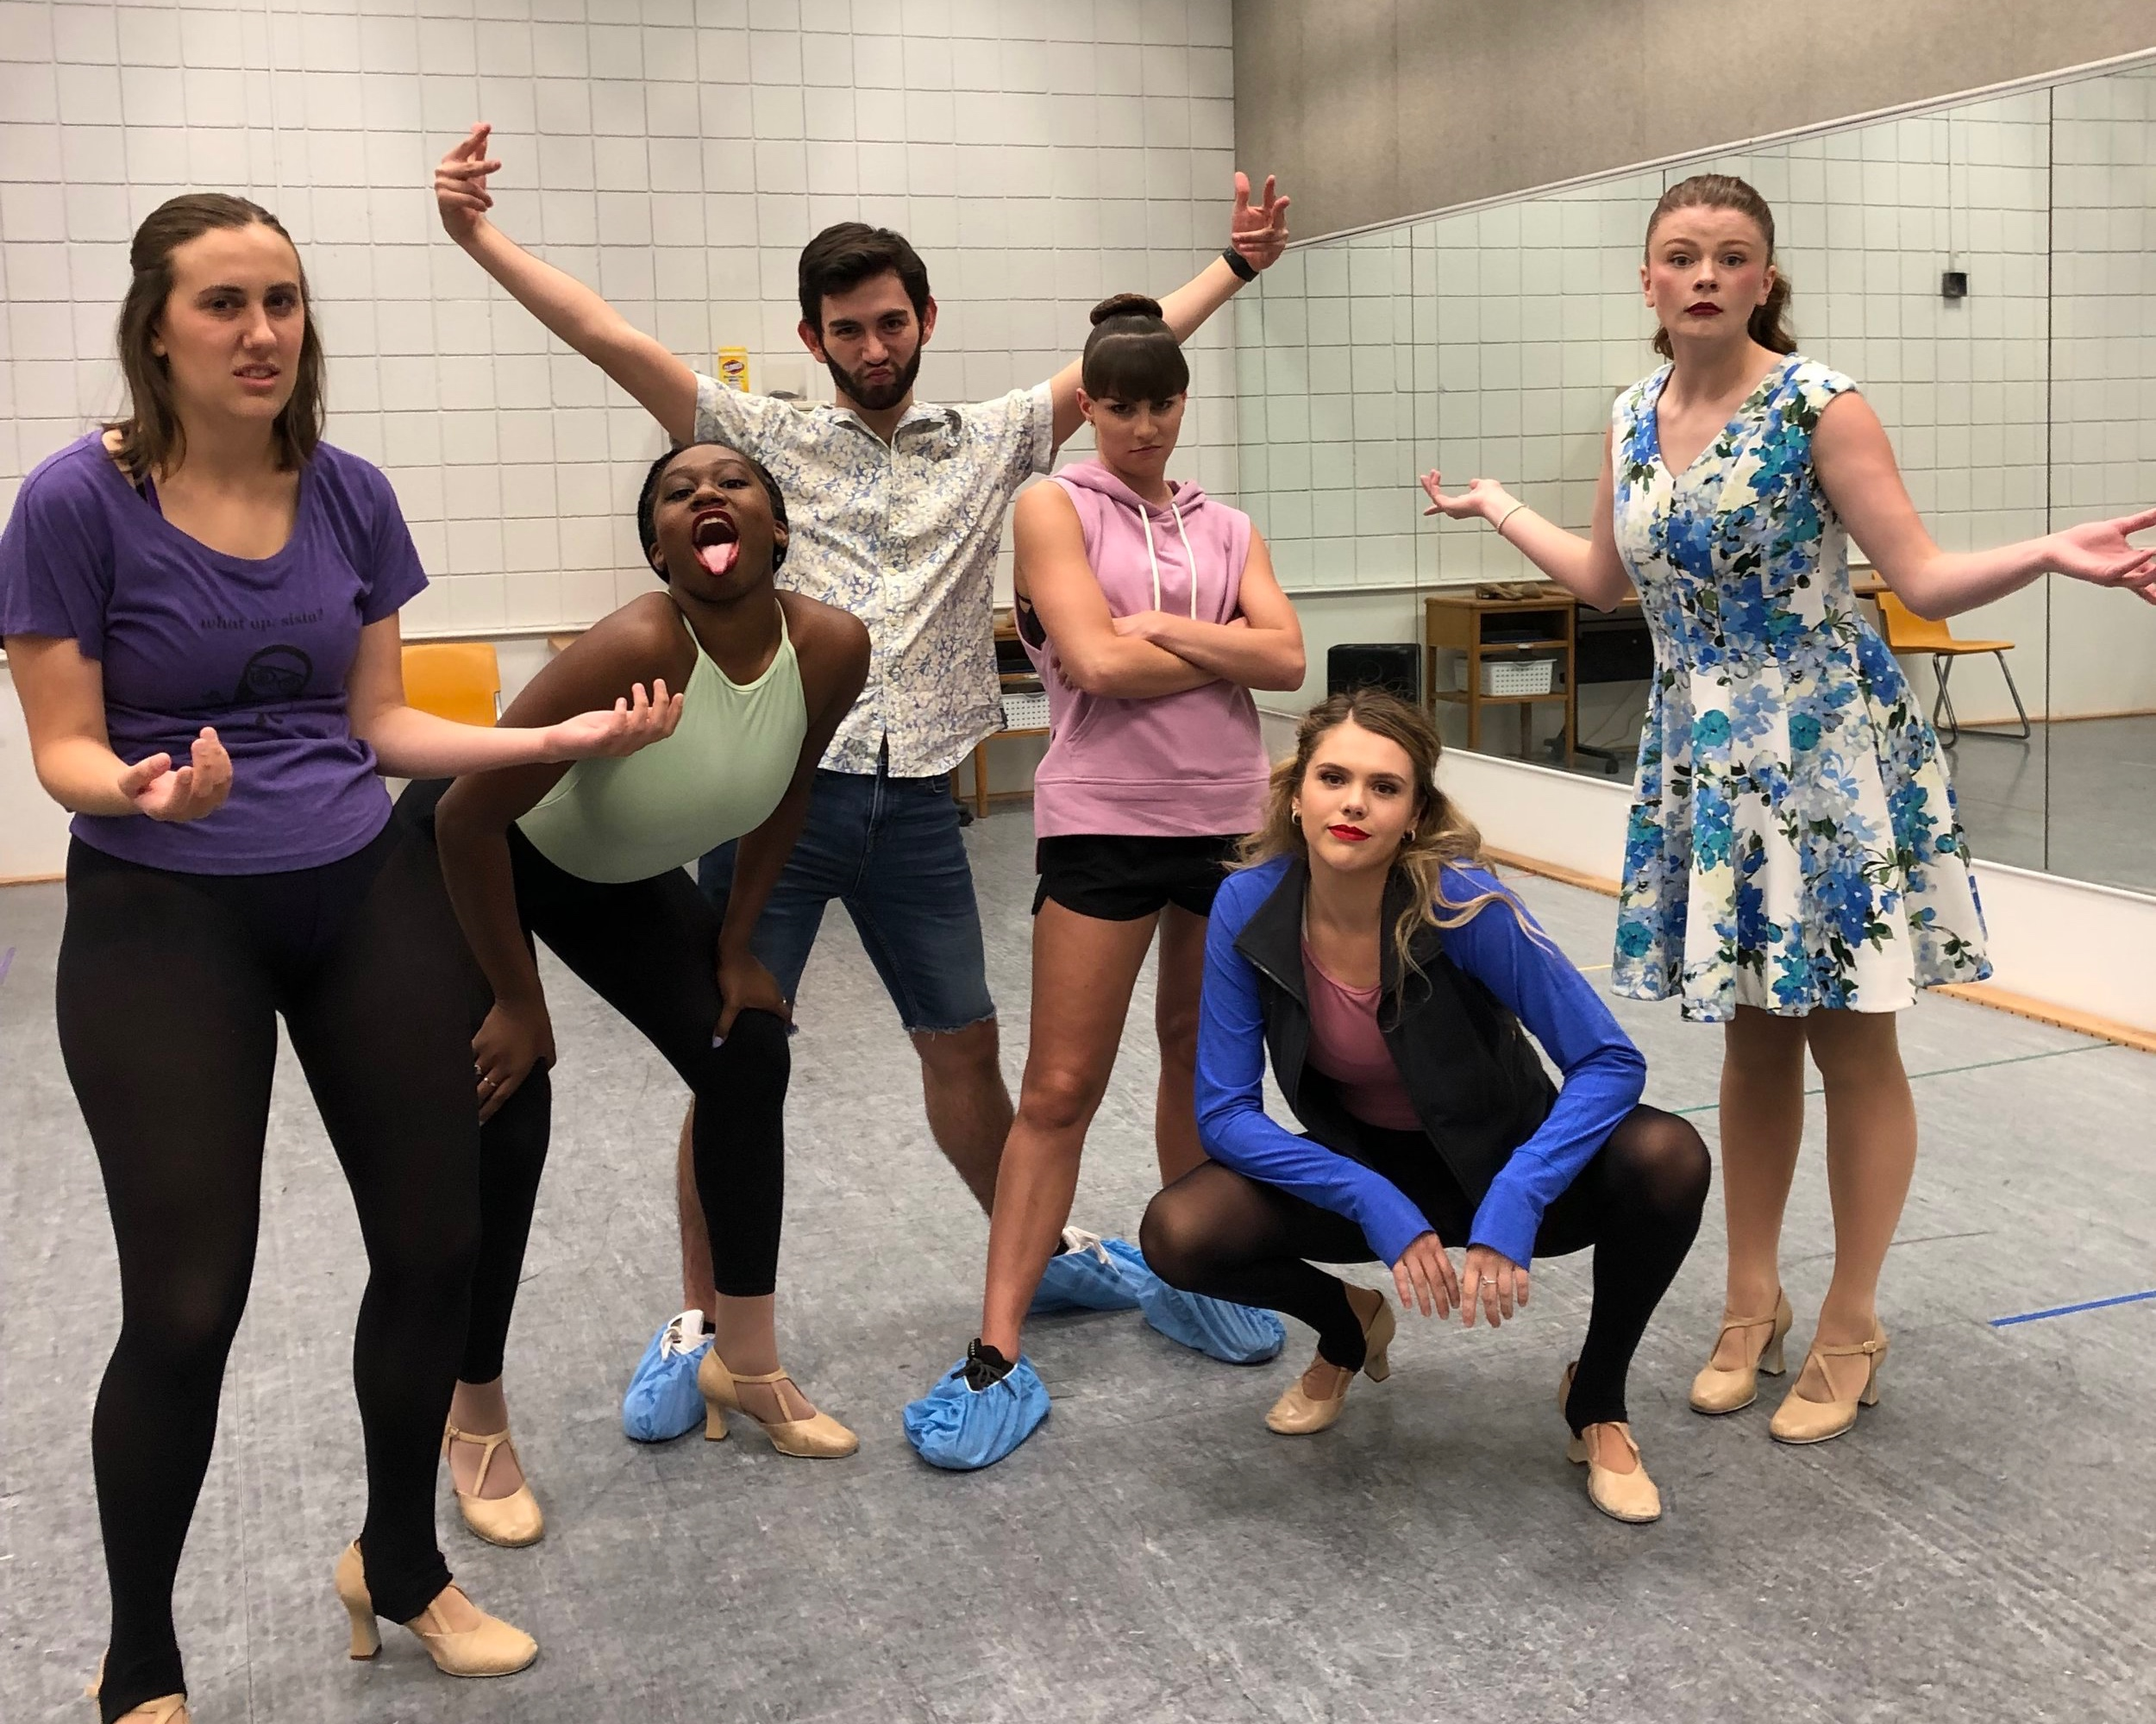 Student Choreography Show 2019 - This fall I have been given the amazing opportunity to choreograph for the annual Student Choreograph Show with the Ann Lacy School of American Dance and Entertainment. The Show is October 11th at 6:30 and 9:00 PM. Hope to see you there!Pictured left-right: Ashley Freeman, Maya Momon, Thomas Olson, Mallory Seidlitz, Claire Griese, Kendall Dorrough